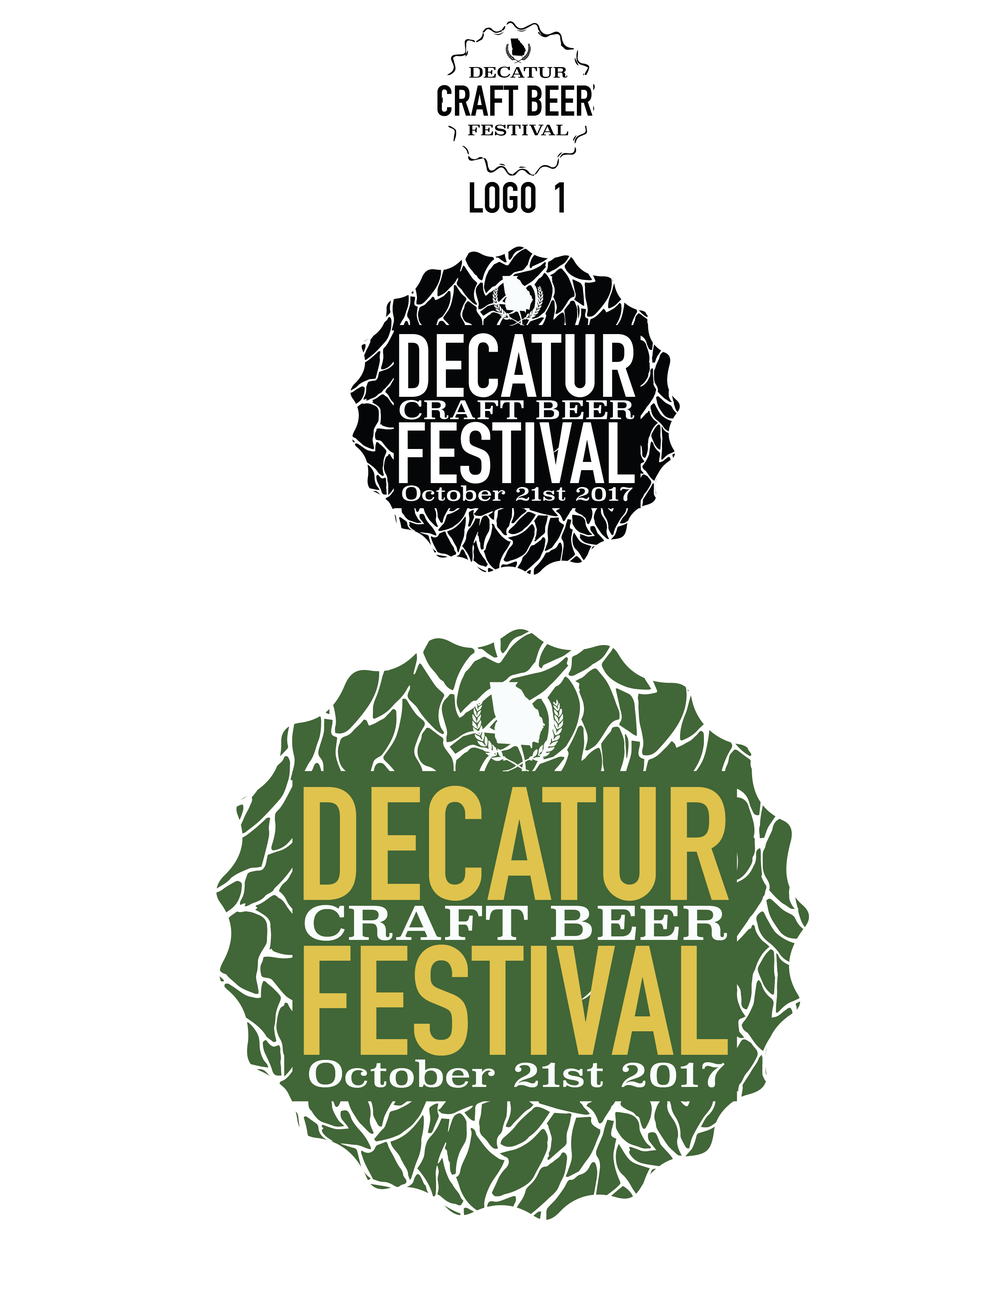 Decatur beer festival-01.png